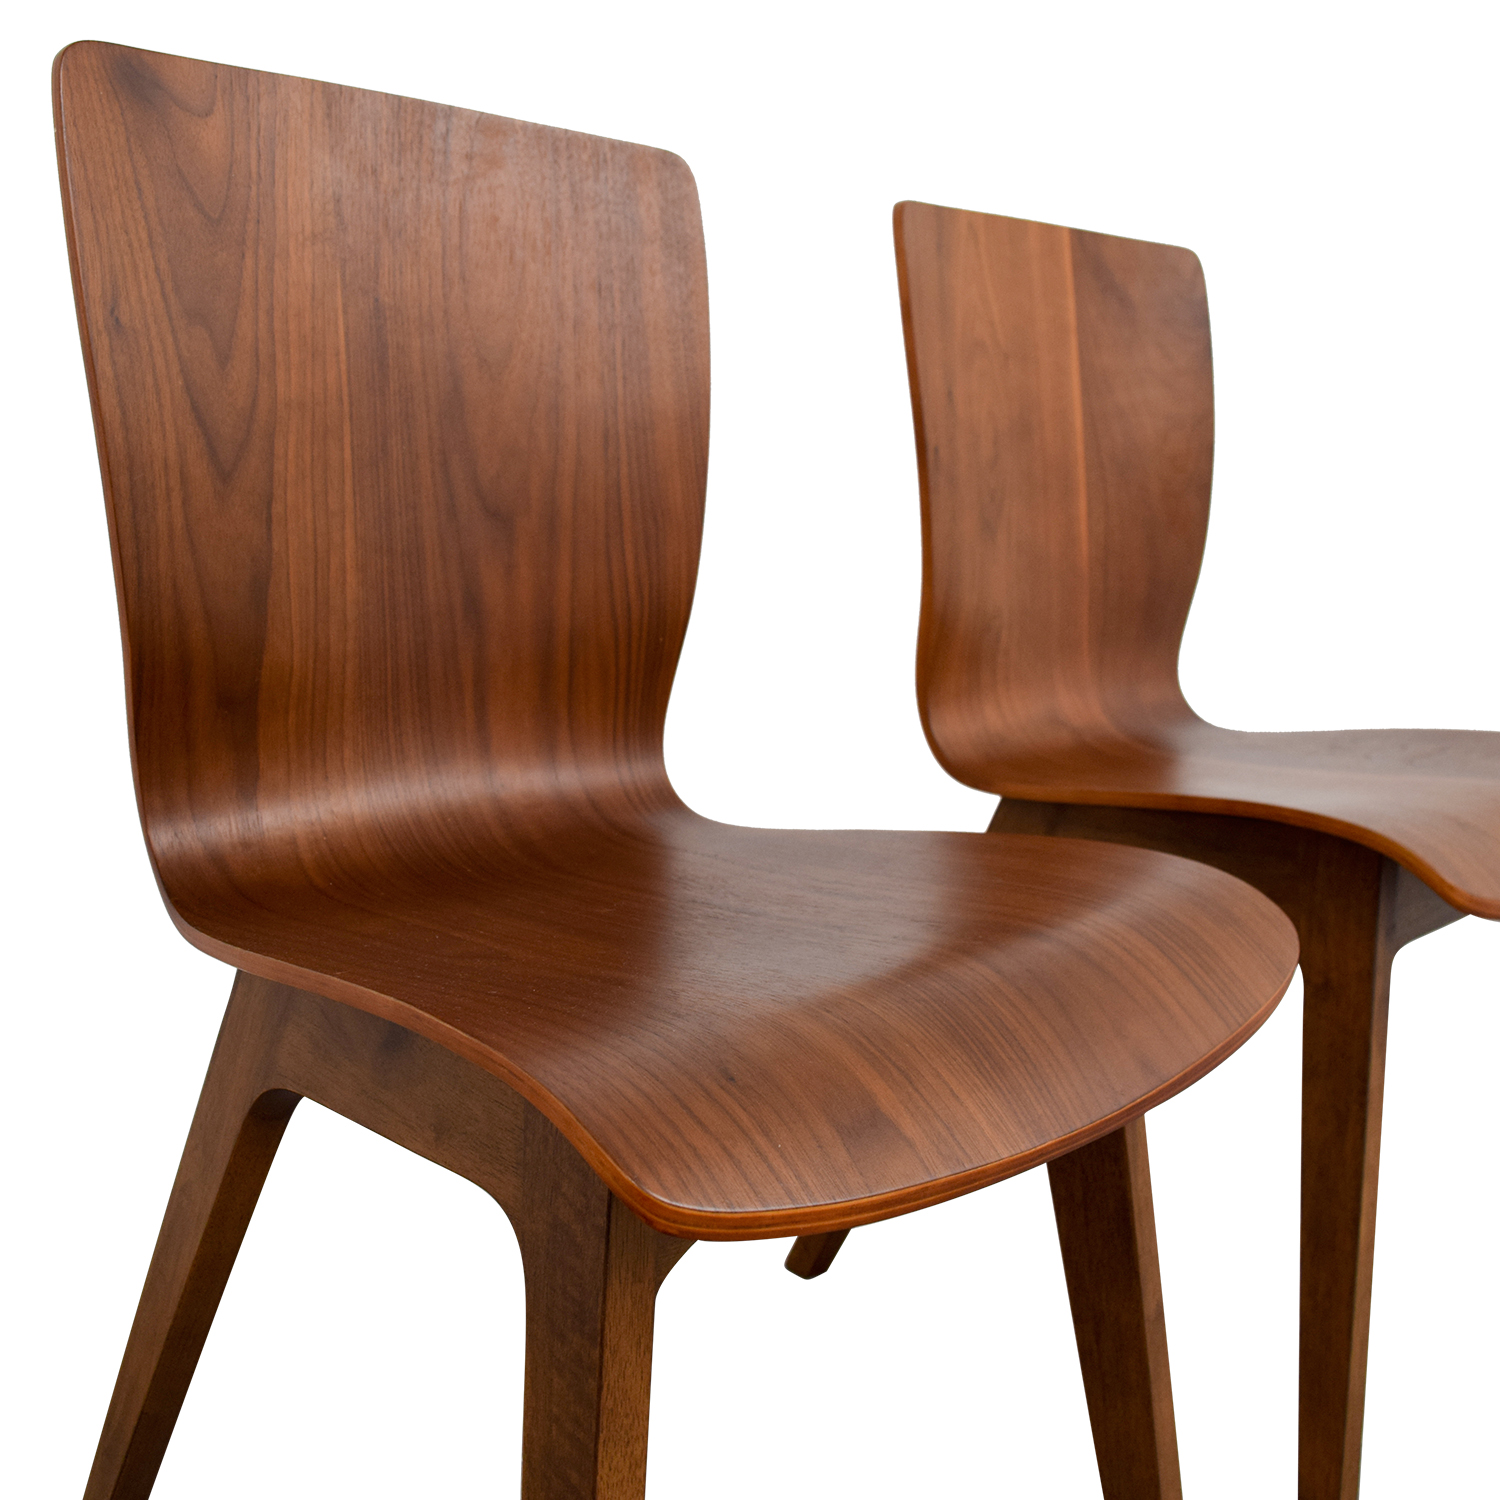 West Elm West Elm Crest Brentwood Chairs dimensions